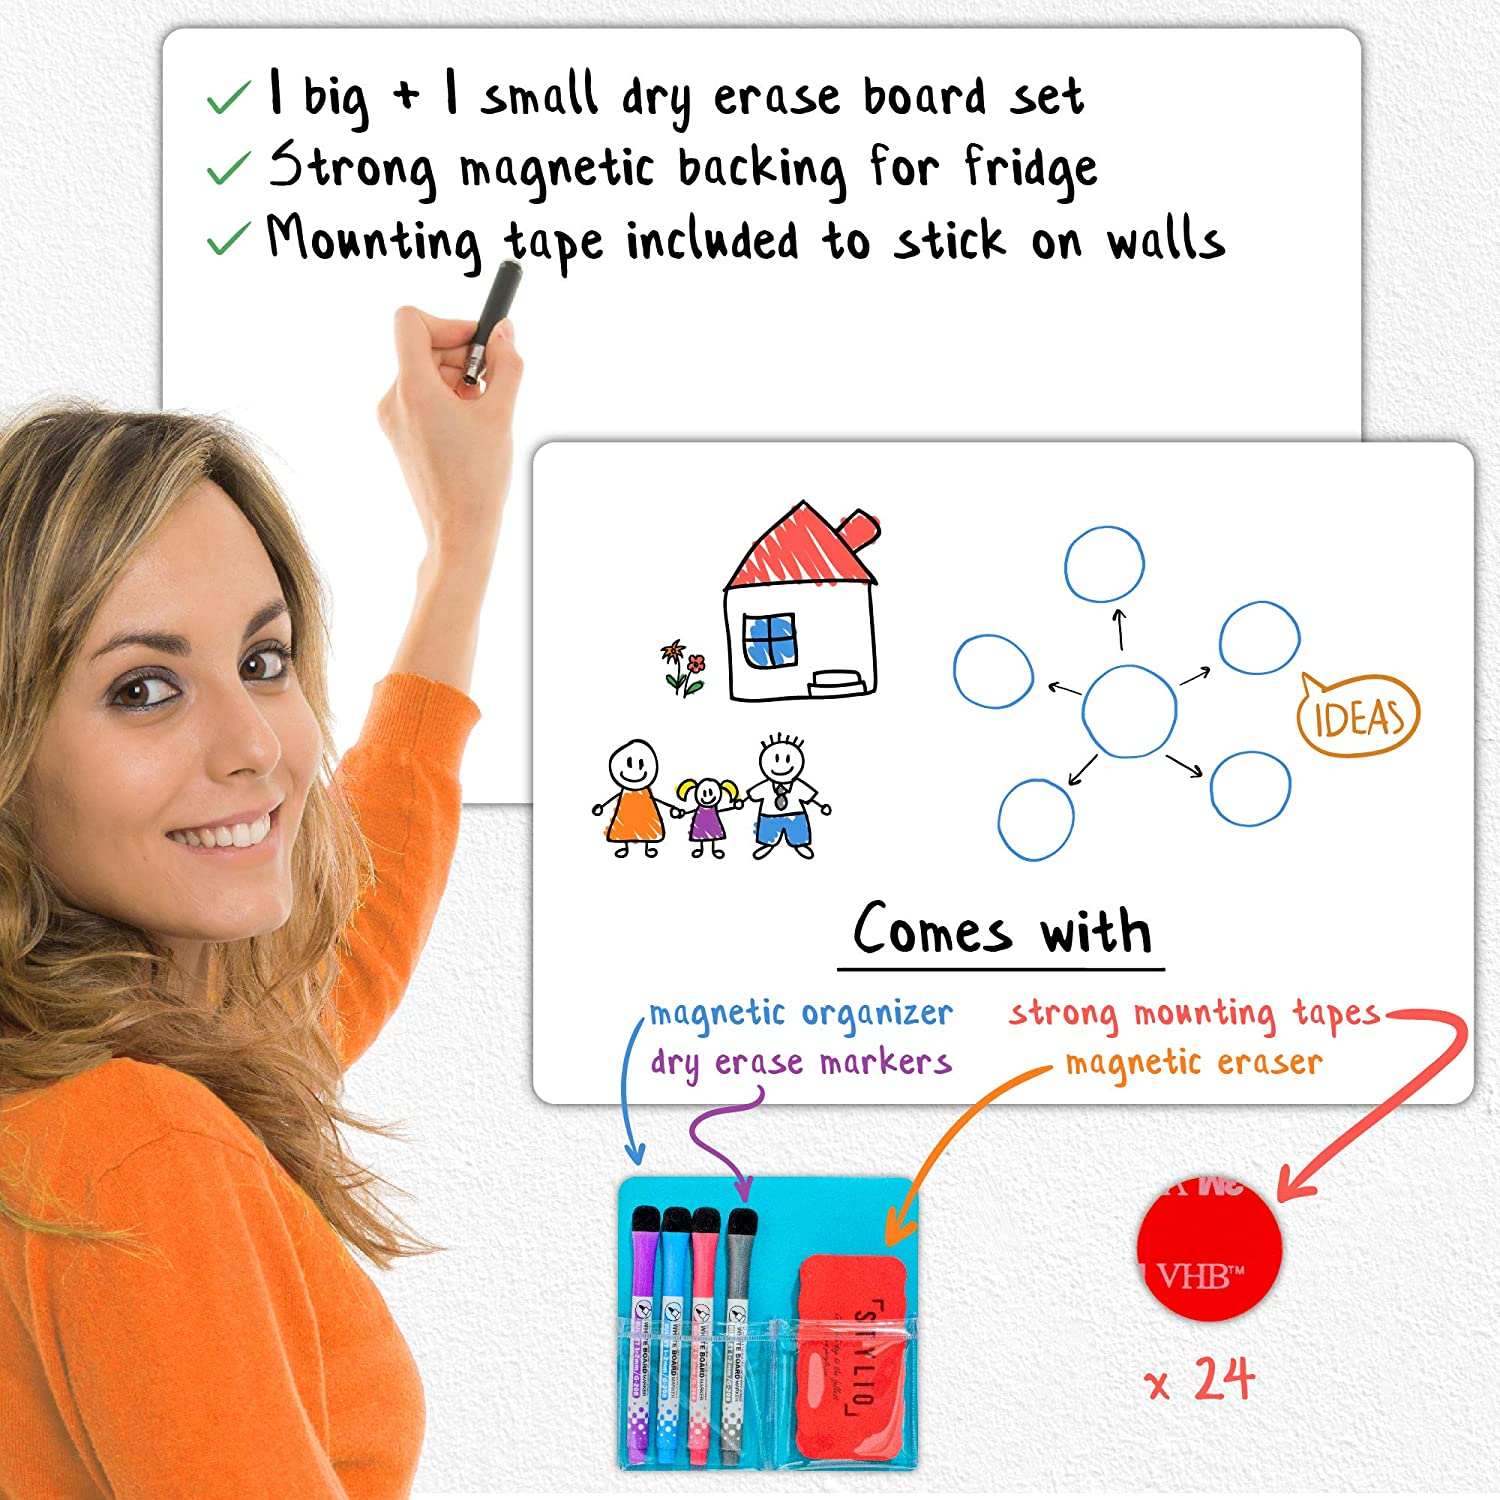 STYLIO Magnetic Dry Erase White B Board Large Set: Credence Popular Small